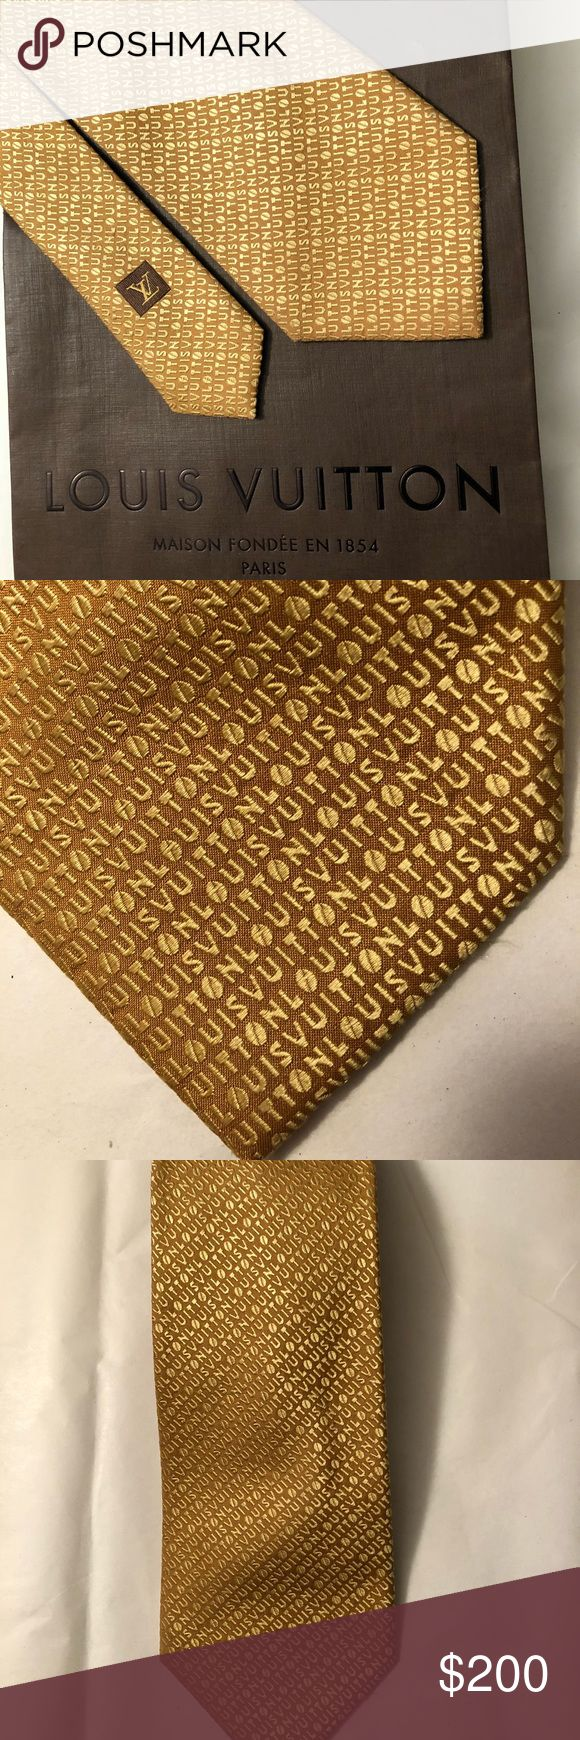 Louis Vuitton Authentic silk designer golden tie Authentic Louis Vuitton designer silk tie from Italy. Unique Vuitton design in great condition. Bag not included Louis Vuitton Accessories Ties